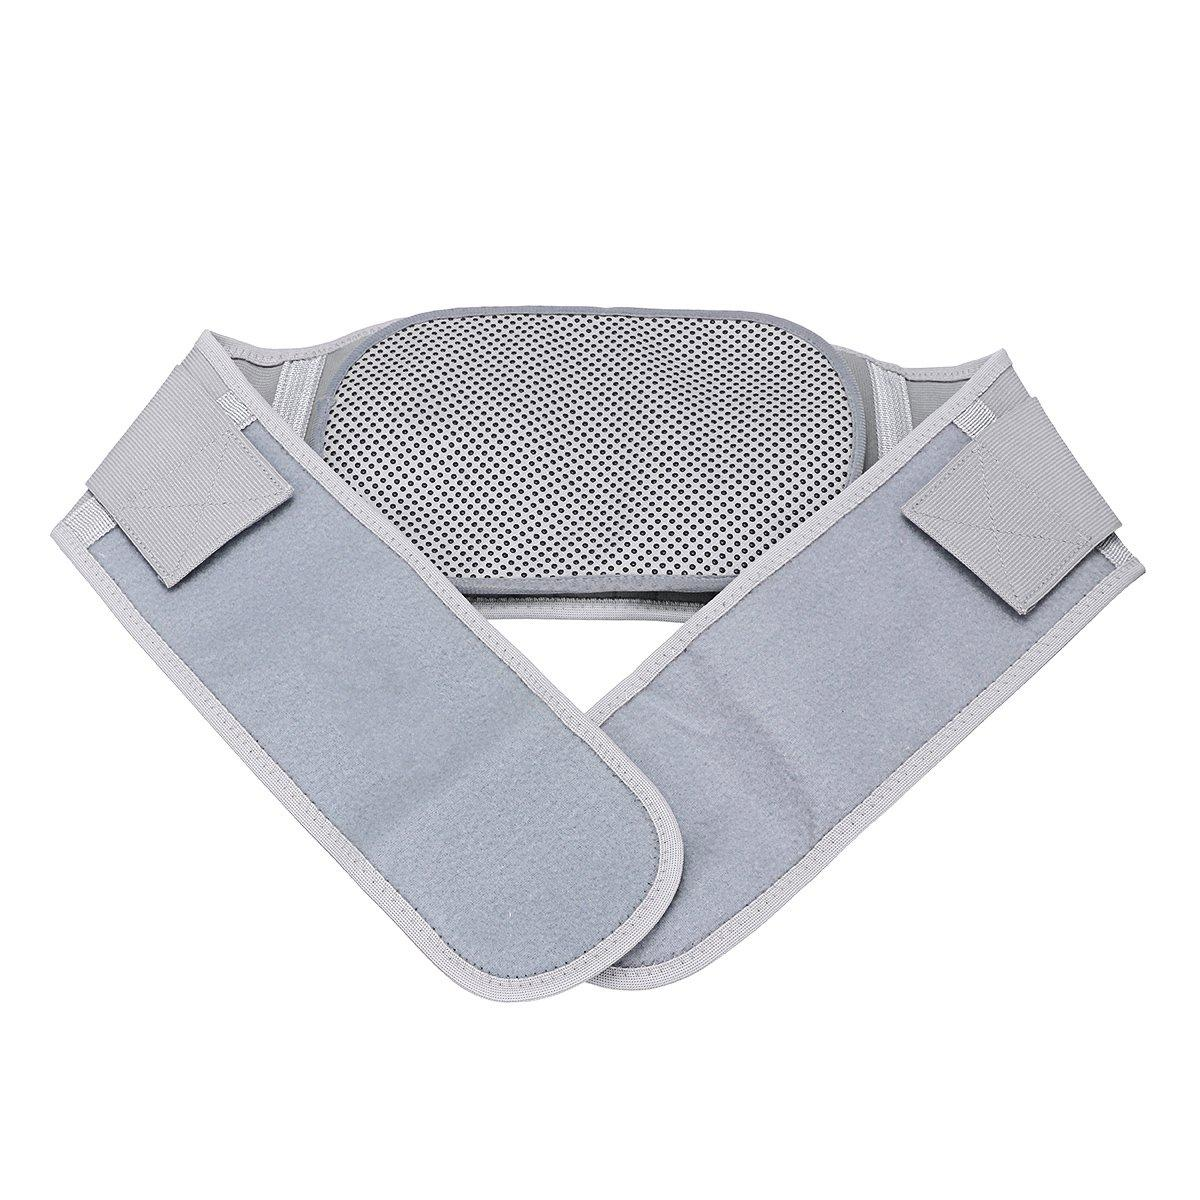 Medical Lumbar Disc Protrusion Tractor Magnetic Self Heating Back Waist Support Brace Belt for Lumbar Muscle Strain Pain Relief